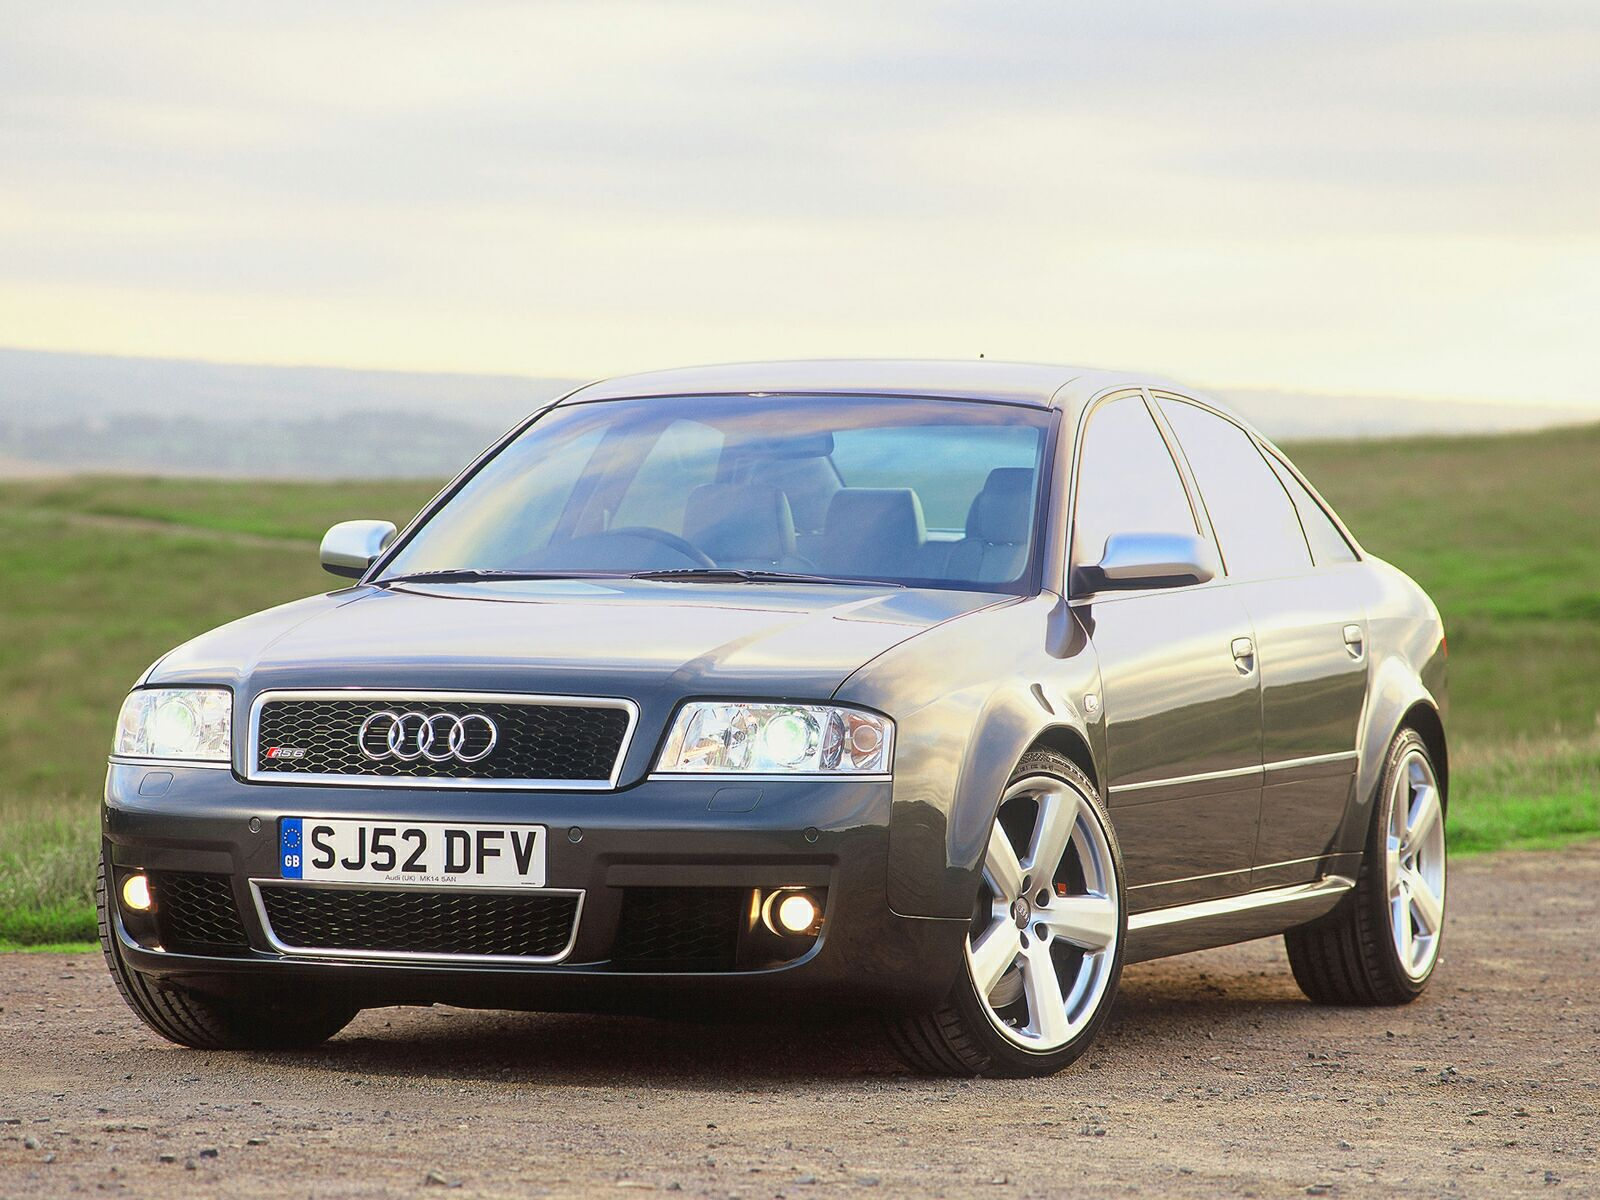 2002 audi rs6 pictures information and specs auto database com